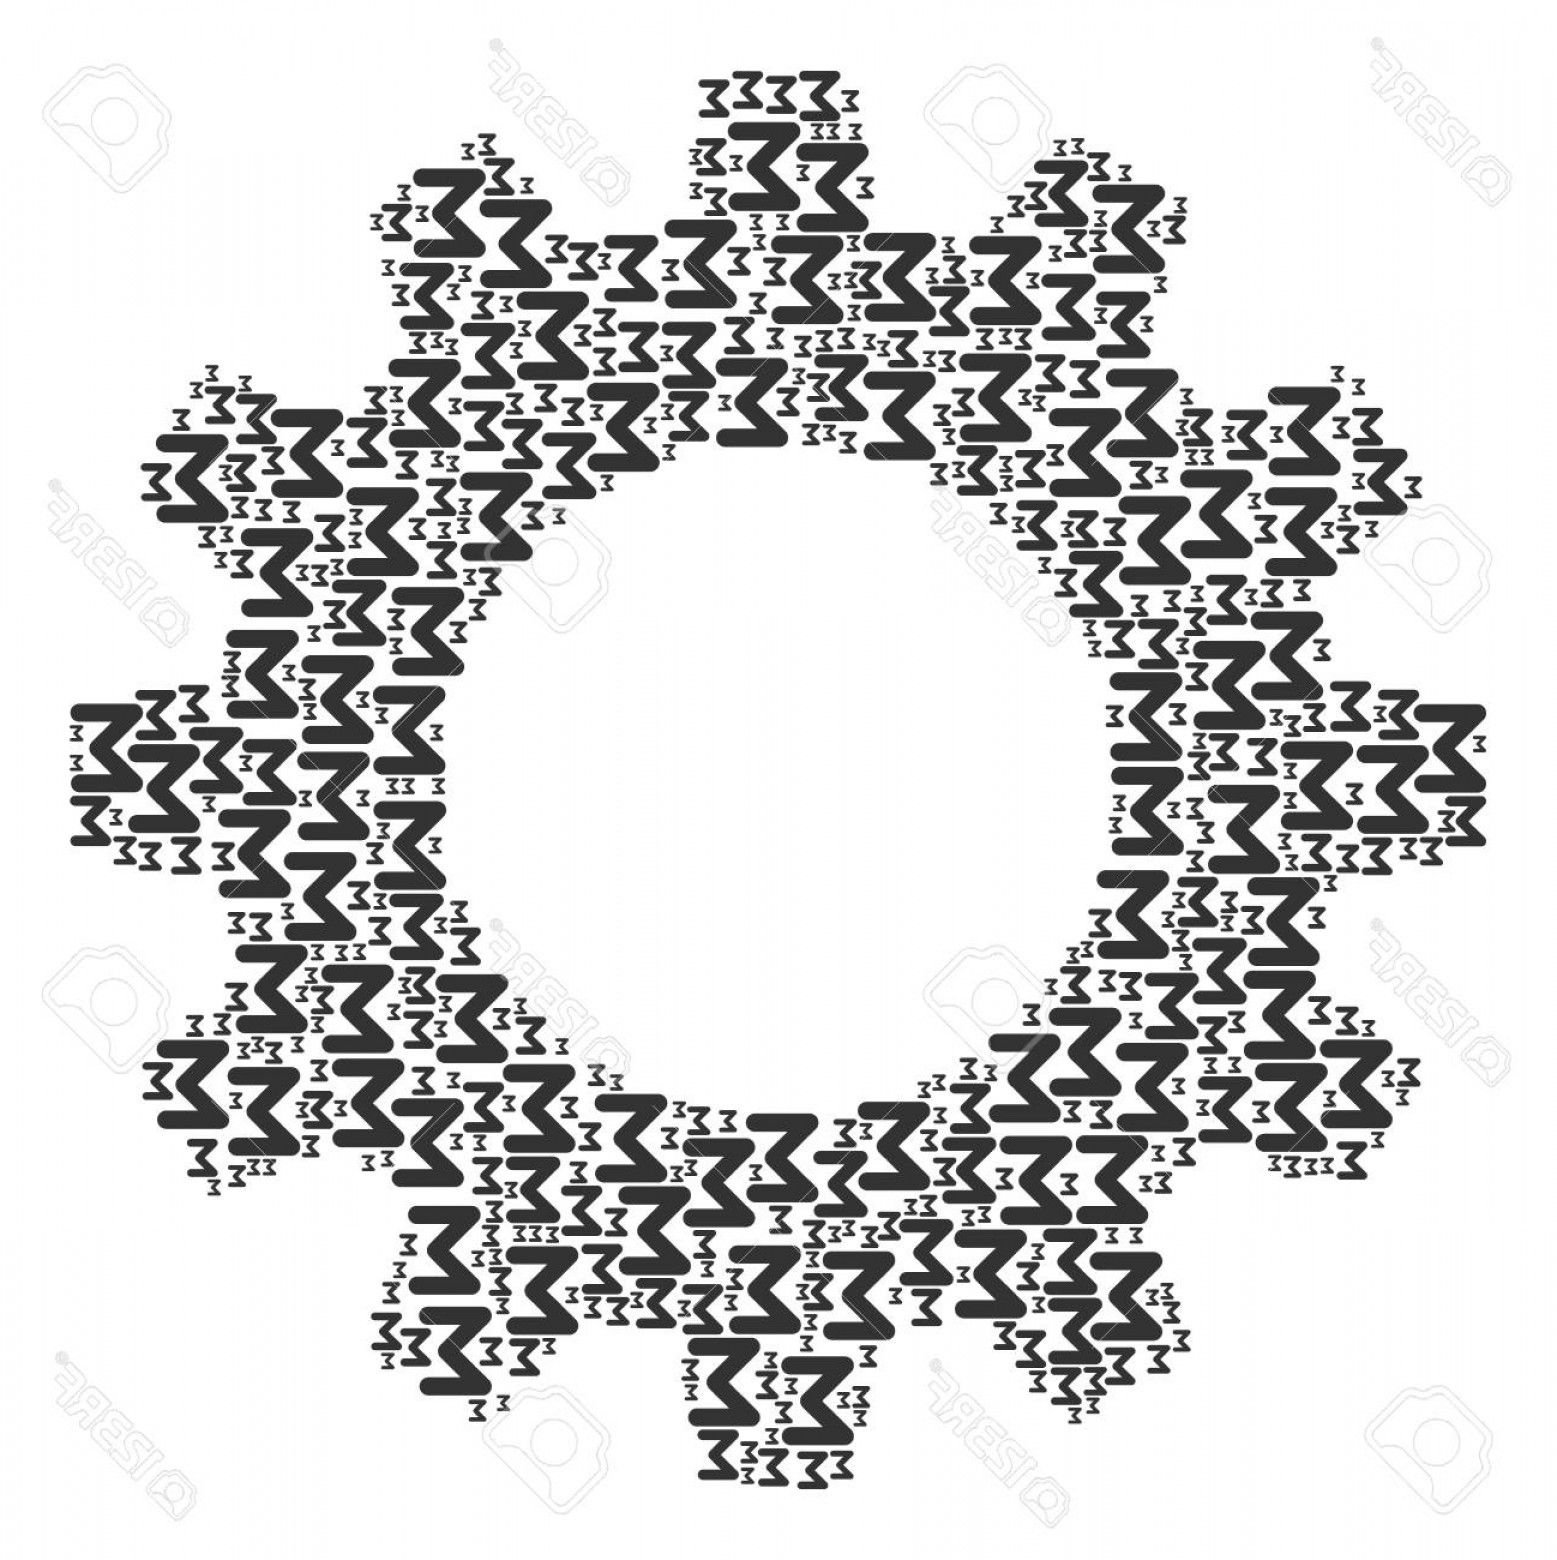 3 Sum Of Vectors Vector: Photostock Vector Vector Sum Icons Are Formed Into Cog Illustration Development Design Concept Constructed With Sum El